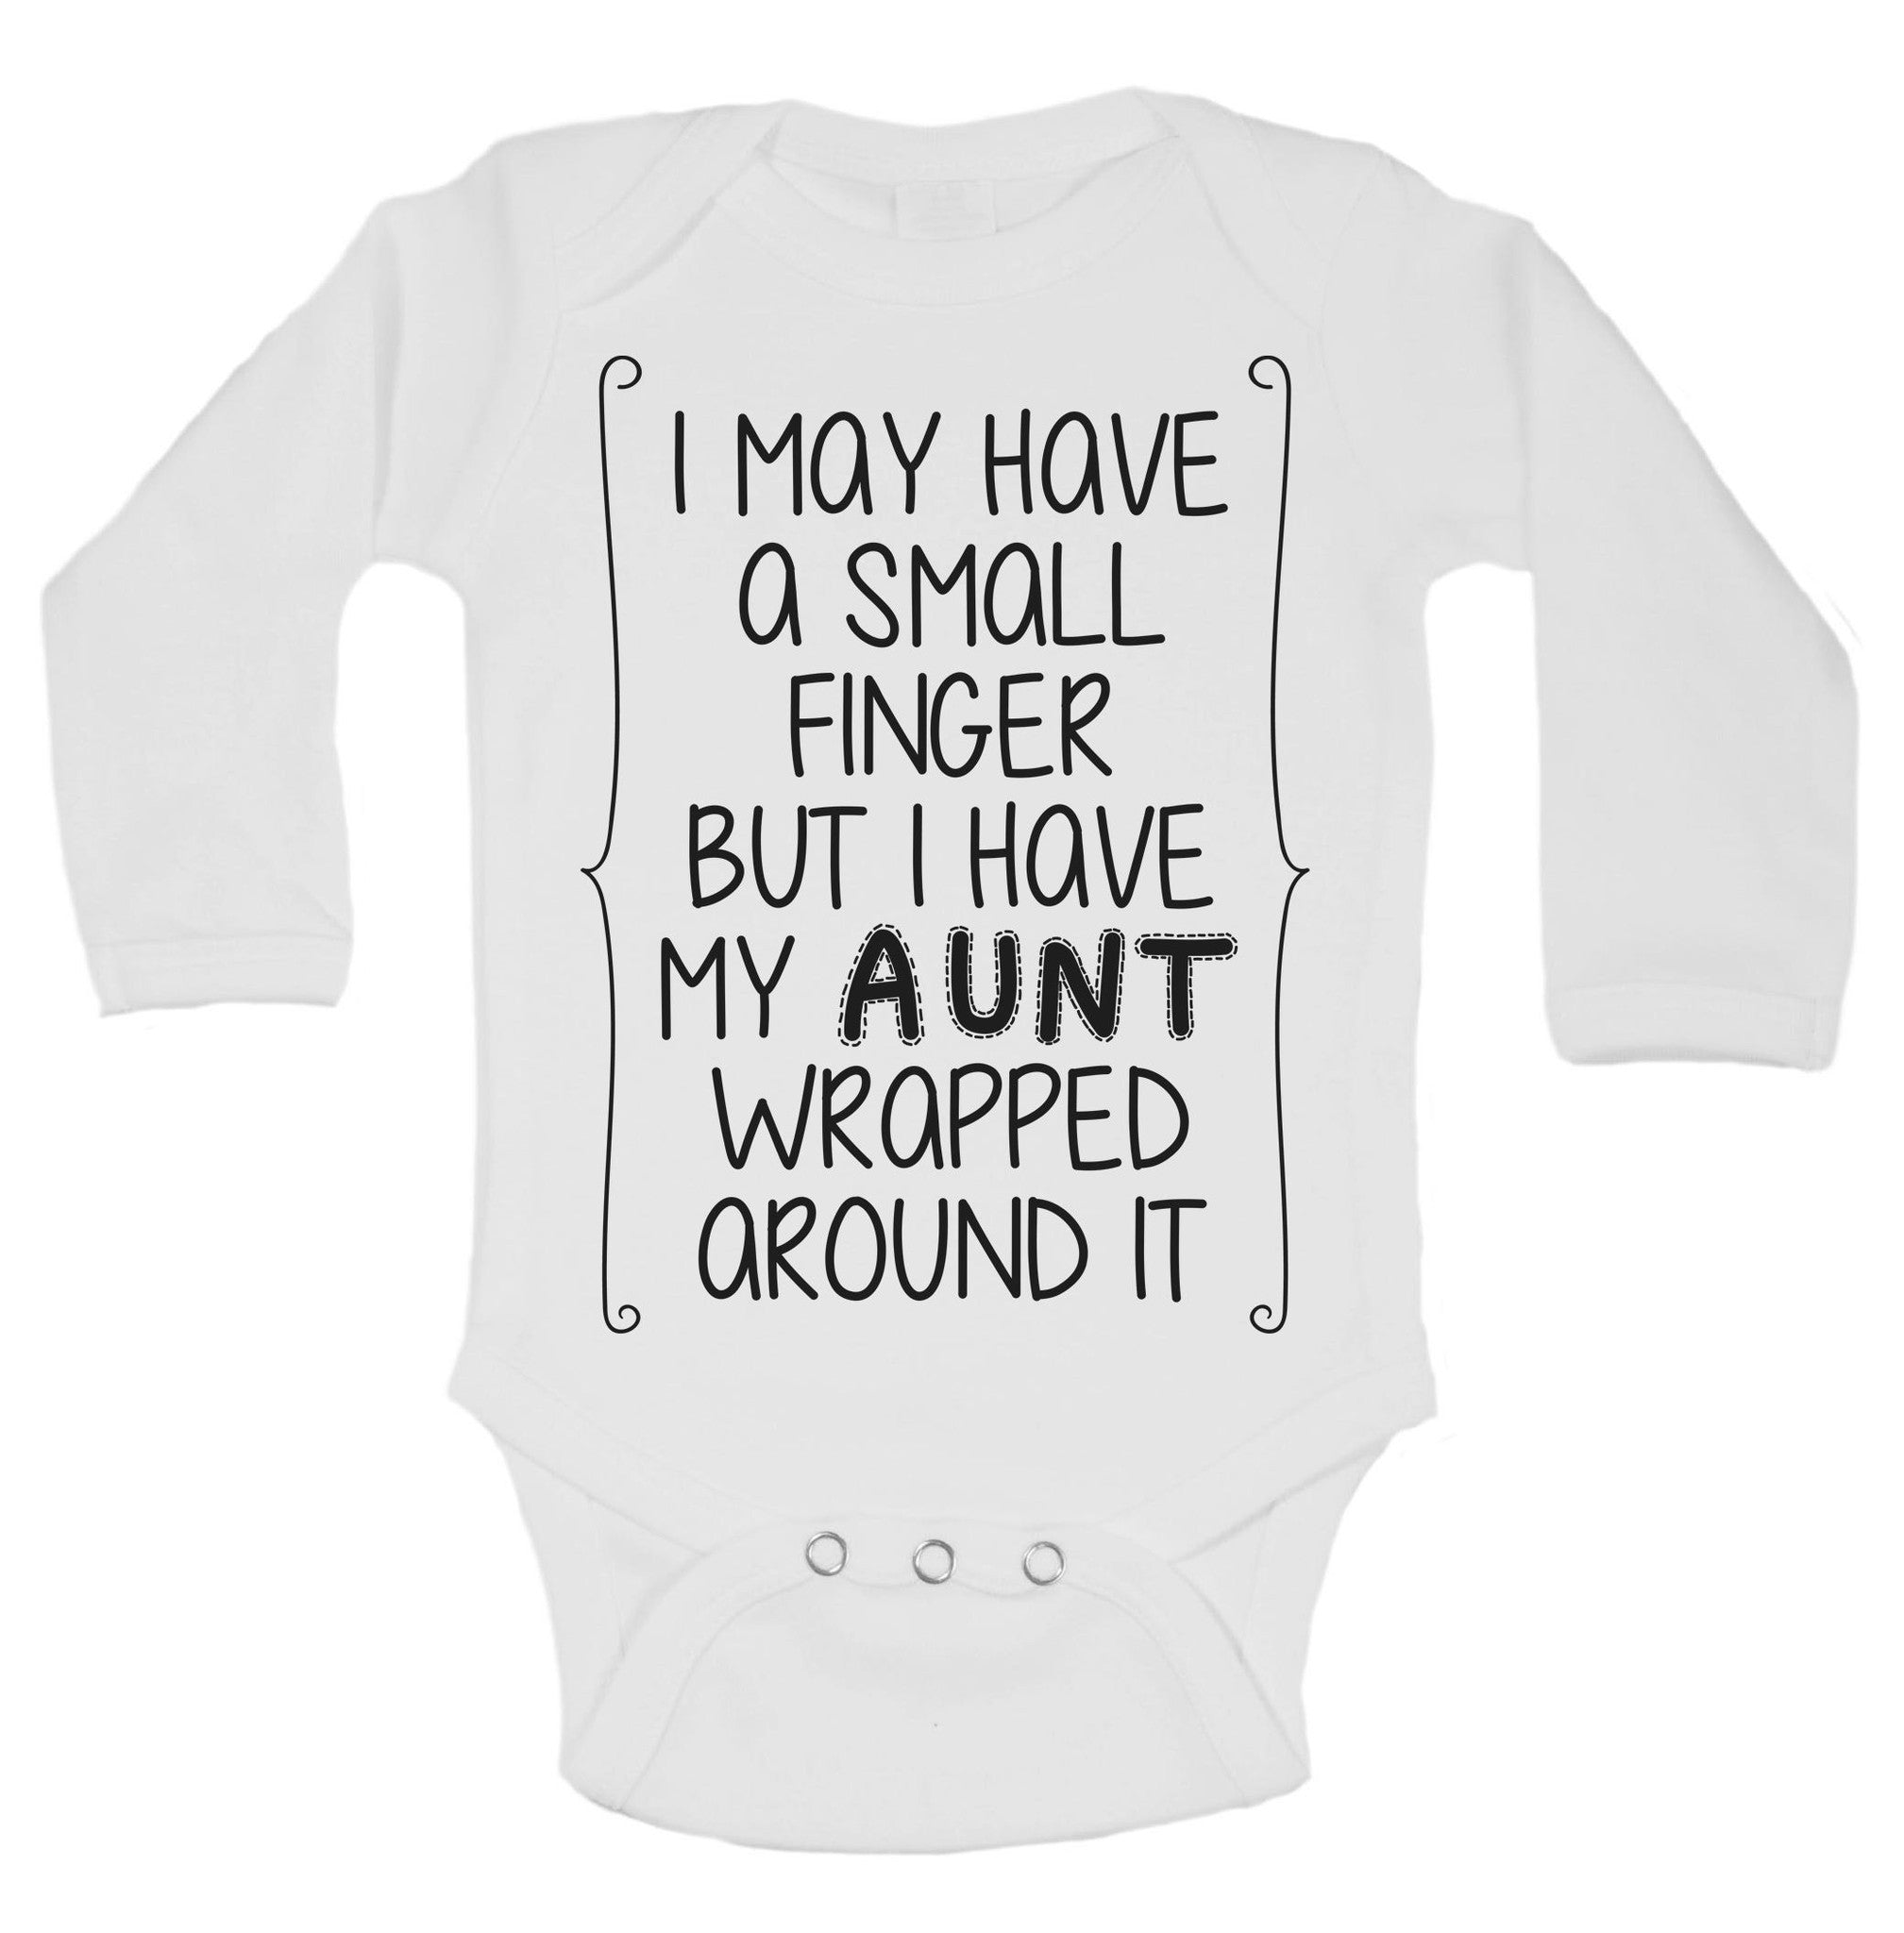 I May Have A Small Finger But I Have My Aunt Wrapped Around It Funny Kids Onesie - B122 - Funny Shirts Tank Tops Burnouts and Triblends  - 1